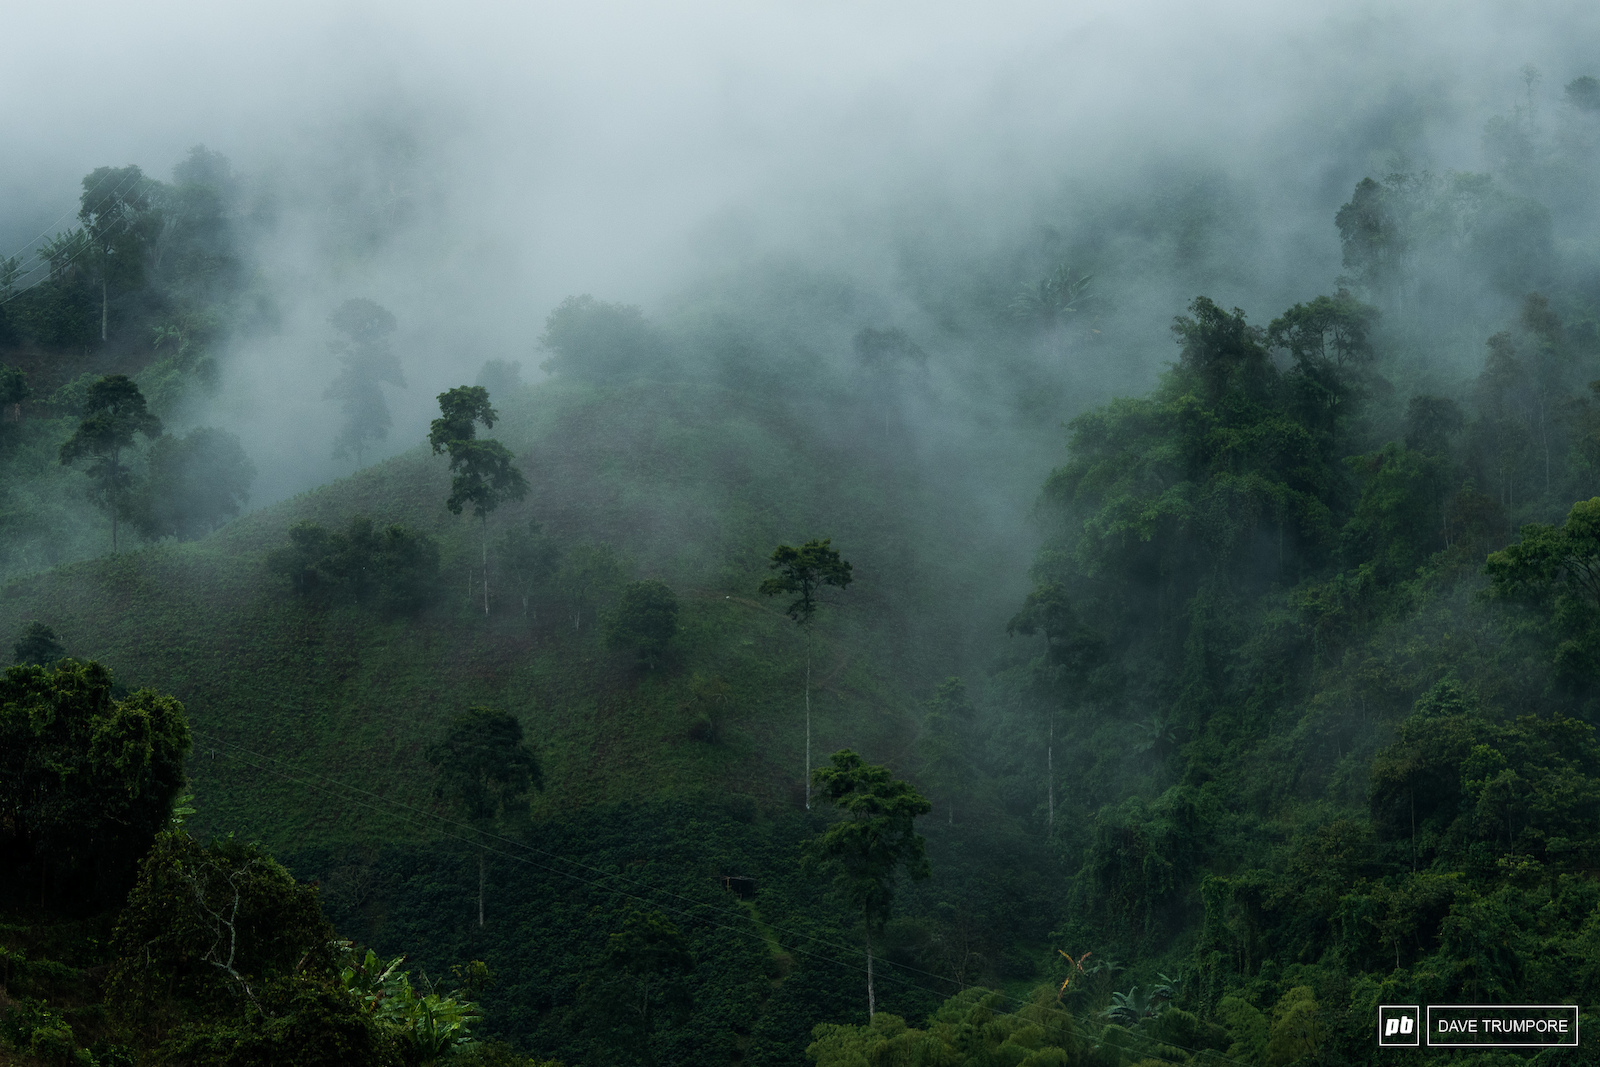 The Enduro Wet Series continues with a massive storm overnight in Colombia.